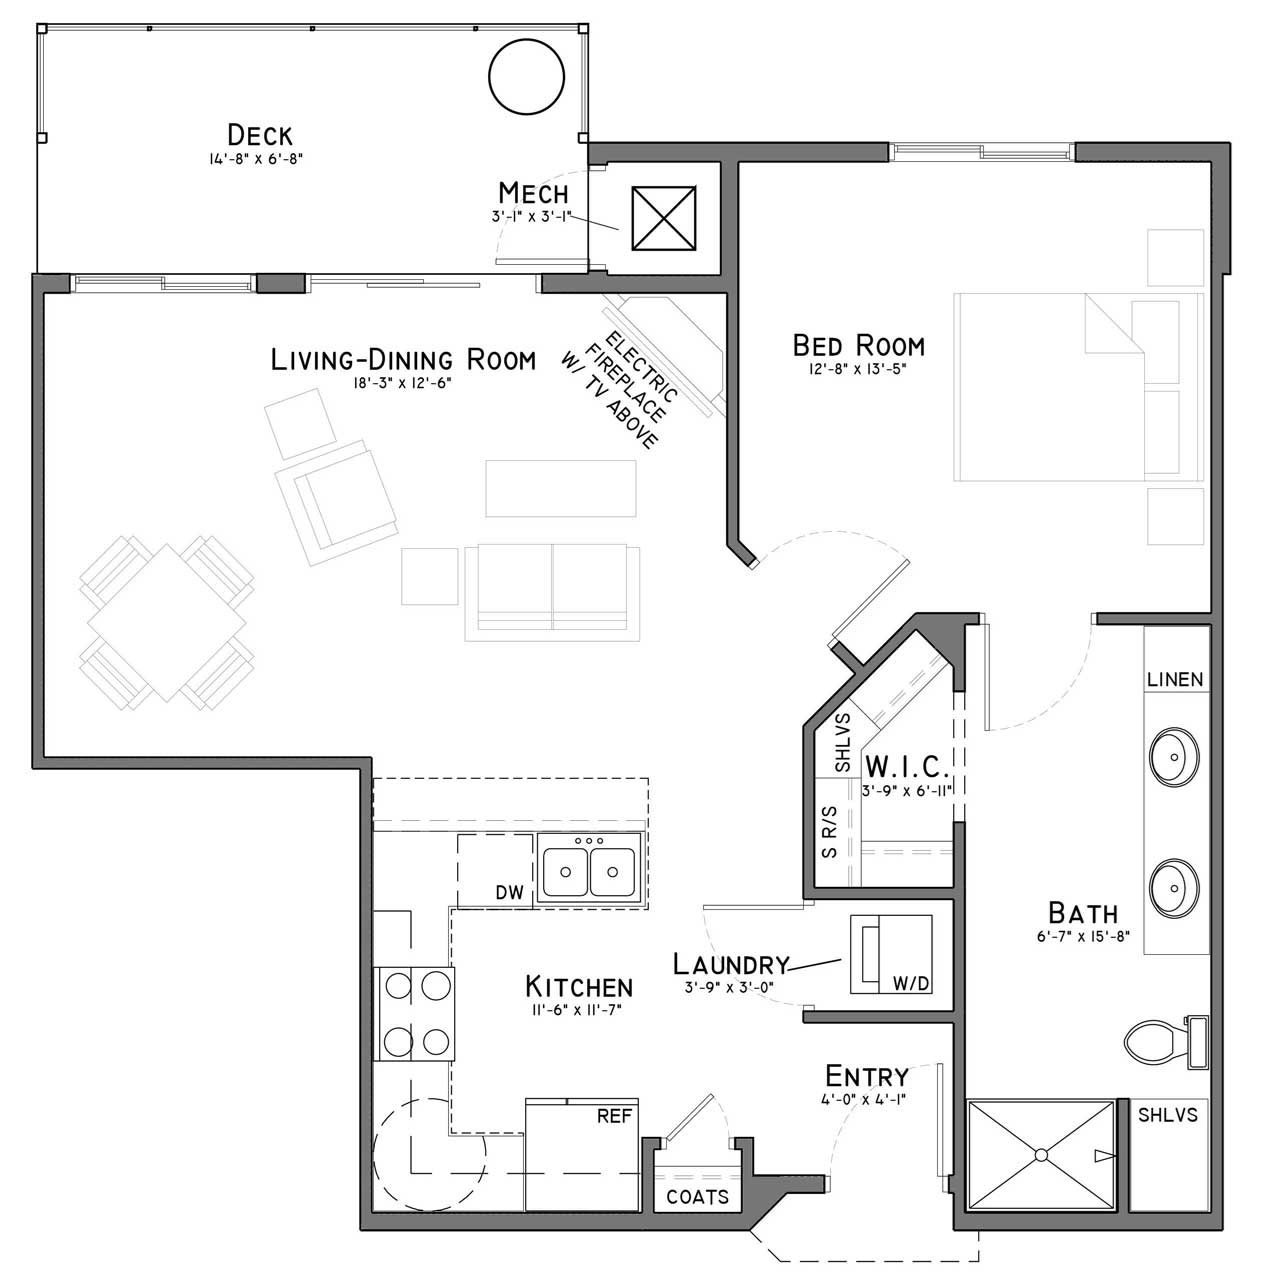 Meadows At Cascade Park Apartments: Share Floor Plans With Friends